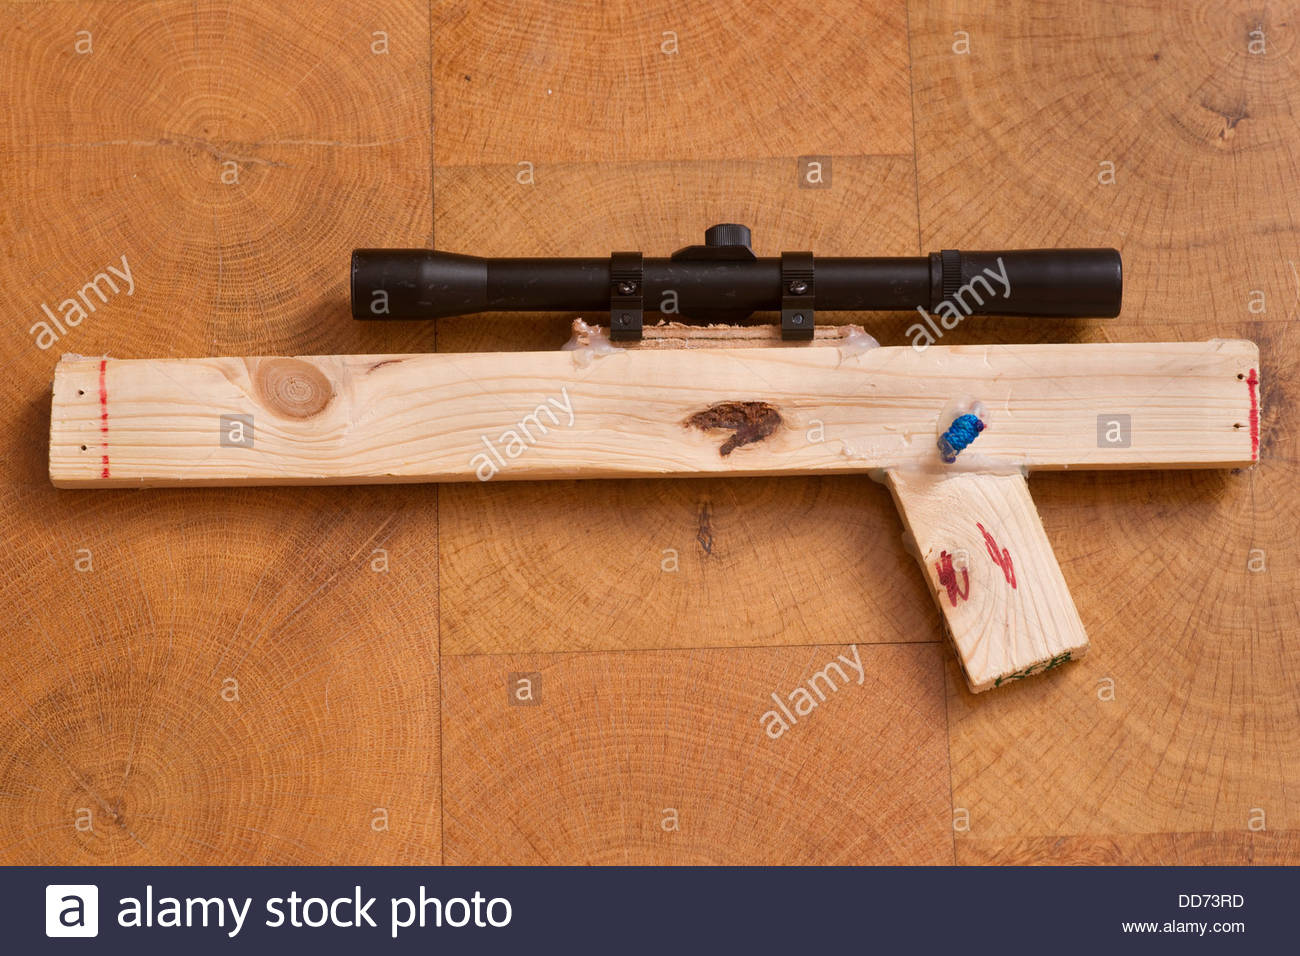 boy child children kid kids playing with toy gun wooden wood homemade with real sniper scope - Stock Image